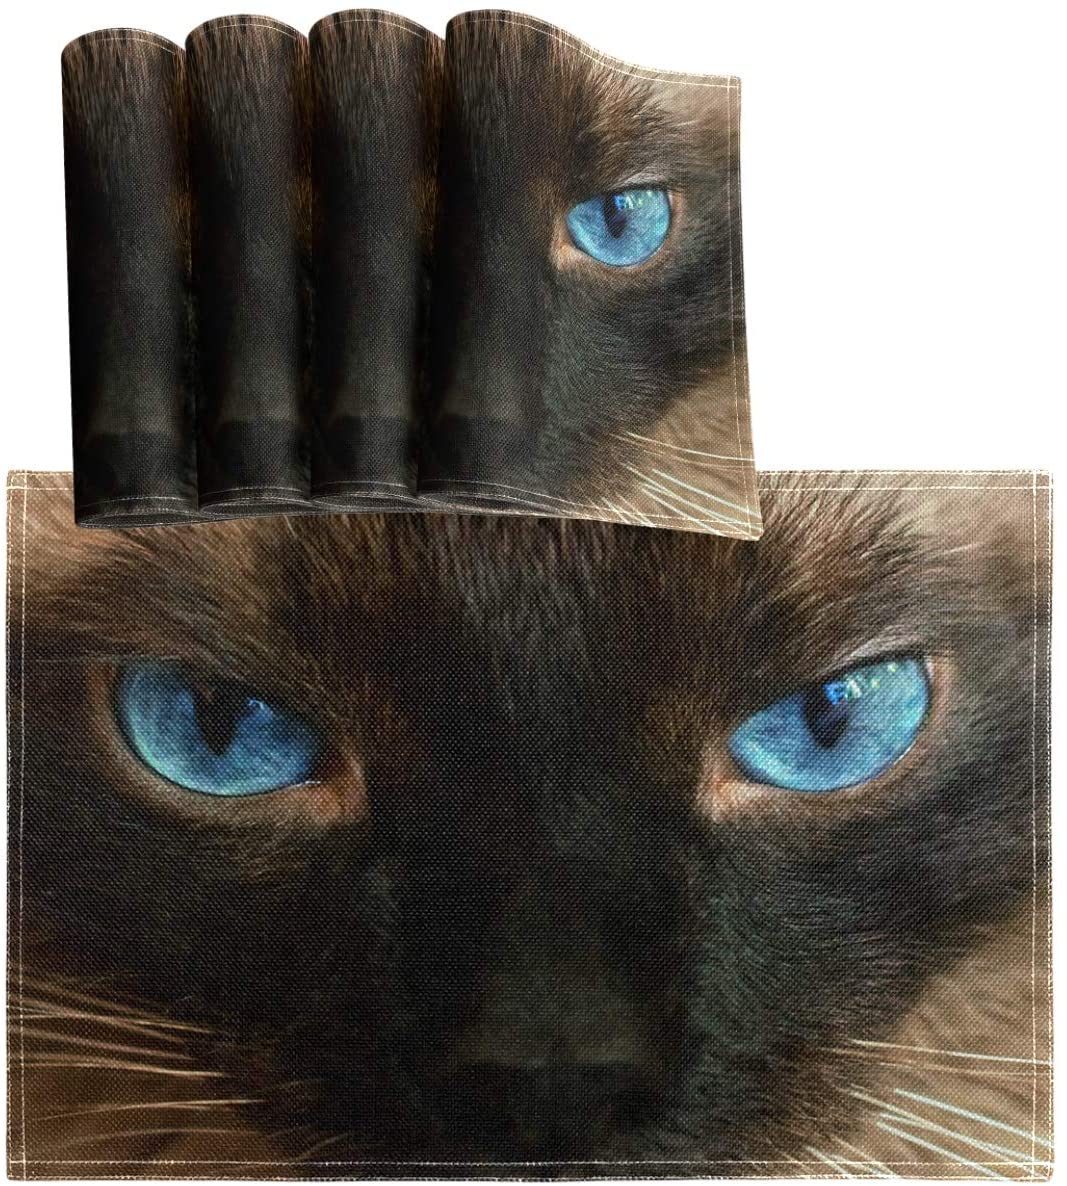 Oarencol Cat Blue Eyes Placemat Table Mats Set of 4, Heat-Resistant Washable Clean Kitchen Place Mats for Dining Table Decoration